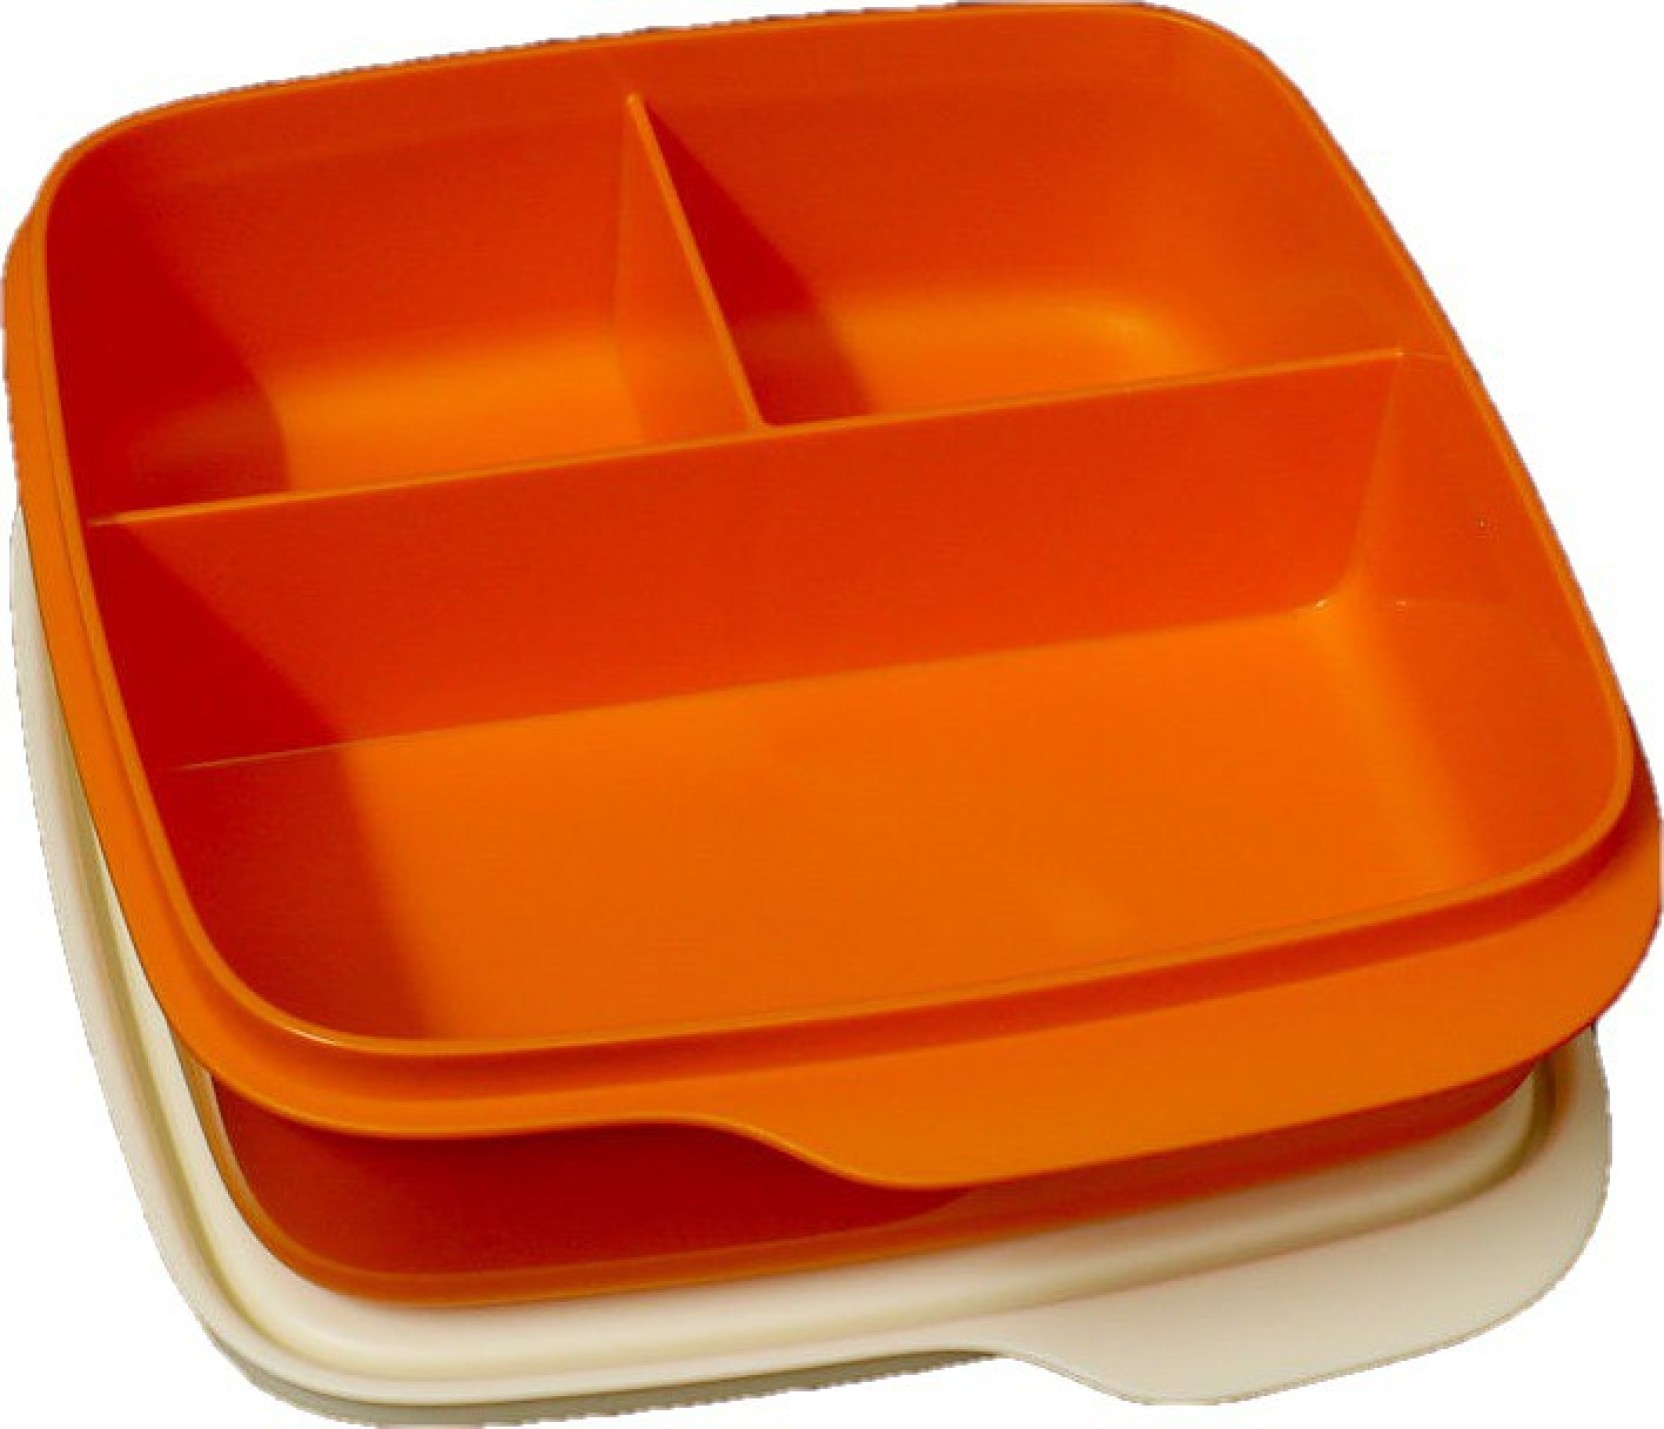 tupperware fun meal 1 containers lunch box. Black Bedroom Furniture Sets. Home Design Ideas